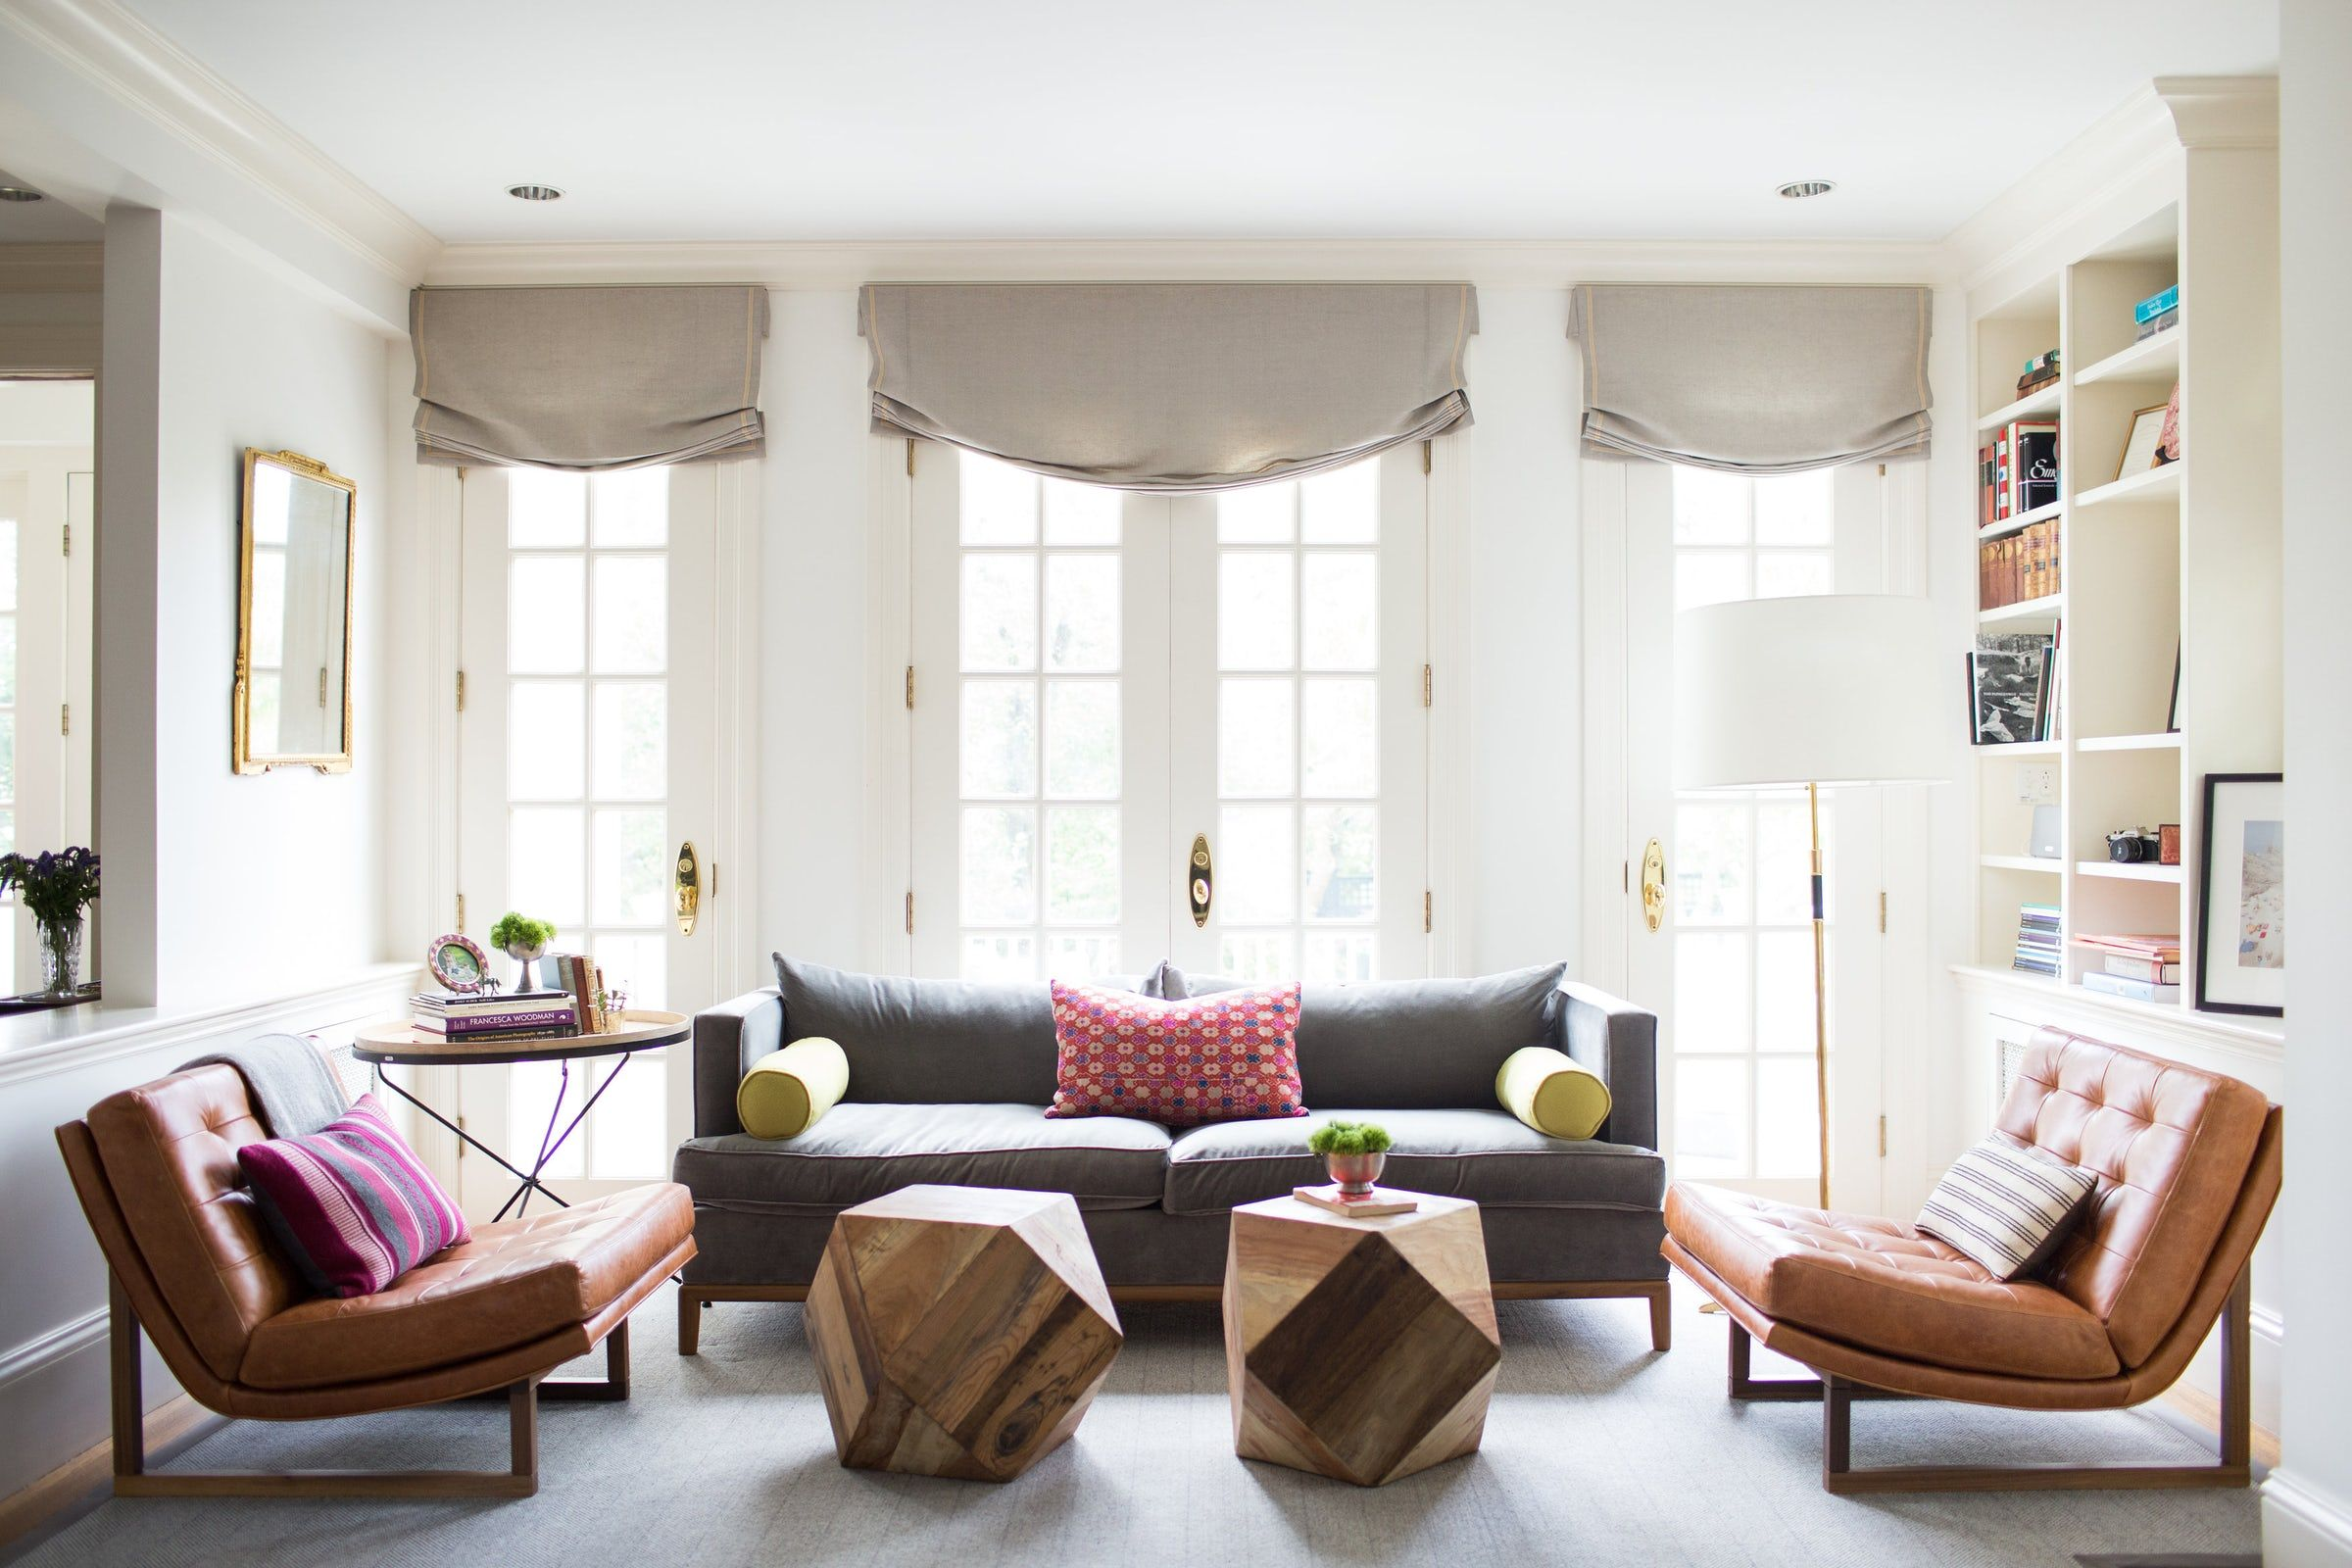 5 Tips For Arranging Your Living Room Furniture